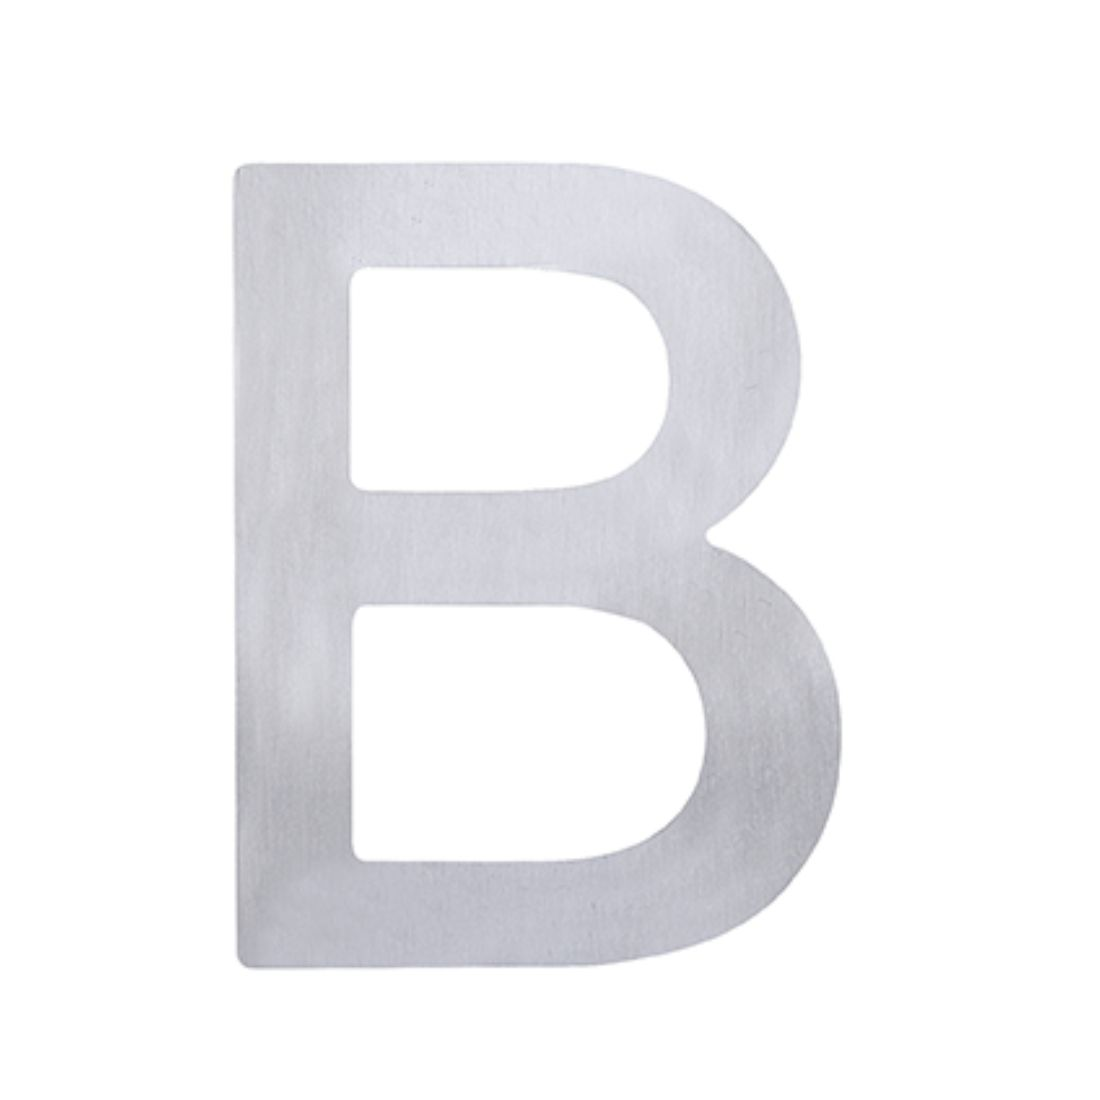 Adhesive Letter B Stainless Steel 75mm 5371-B-SS